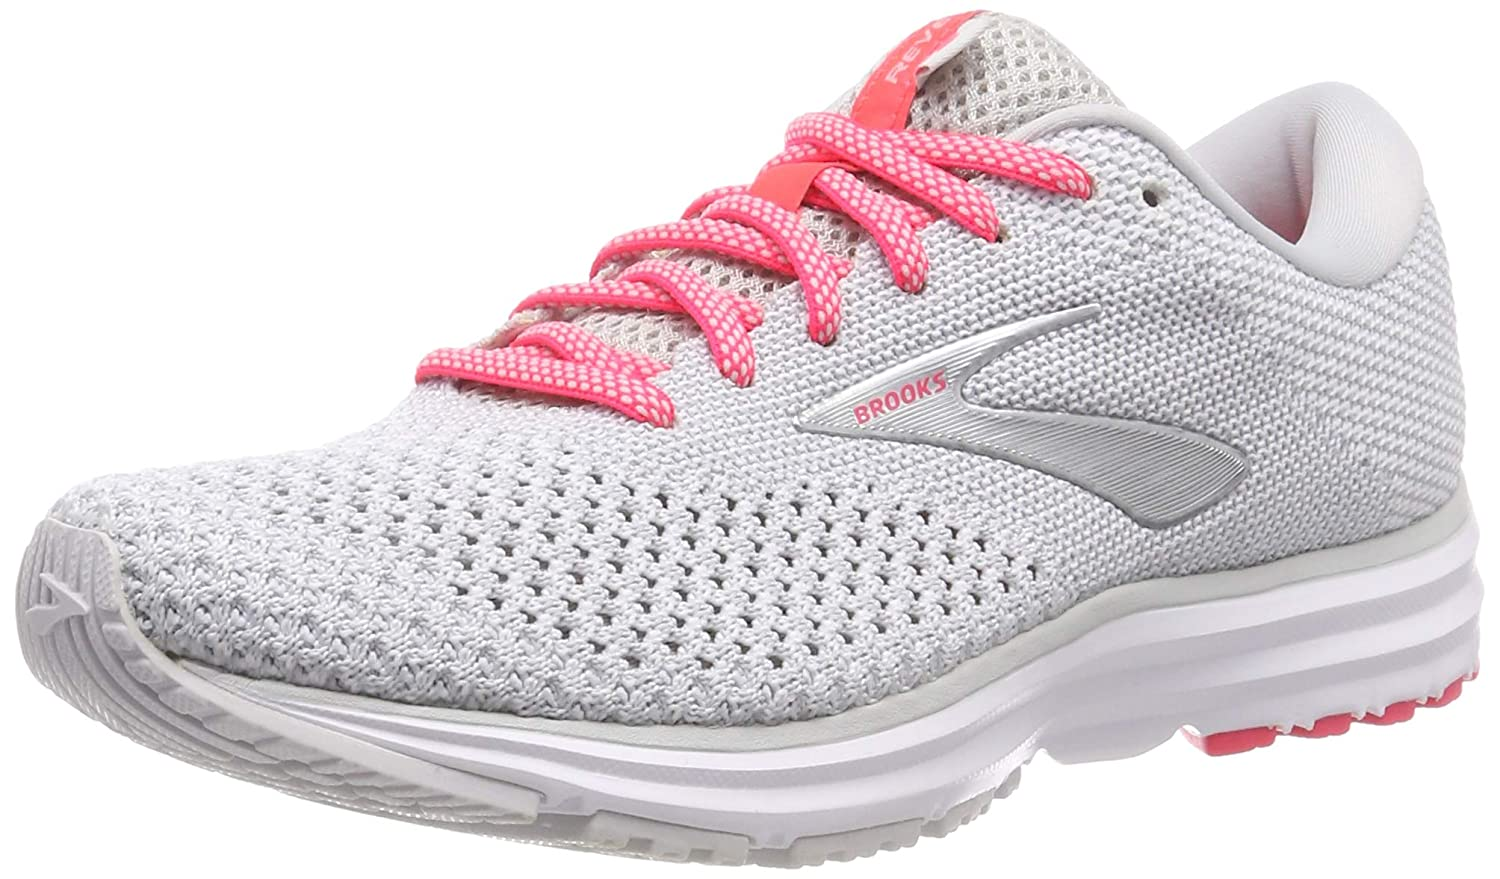 Brooks Women's Revel 2 Running Shoe BROOKS SPORTS LTD